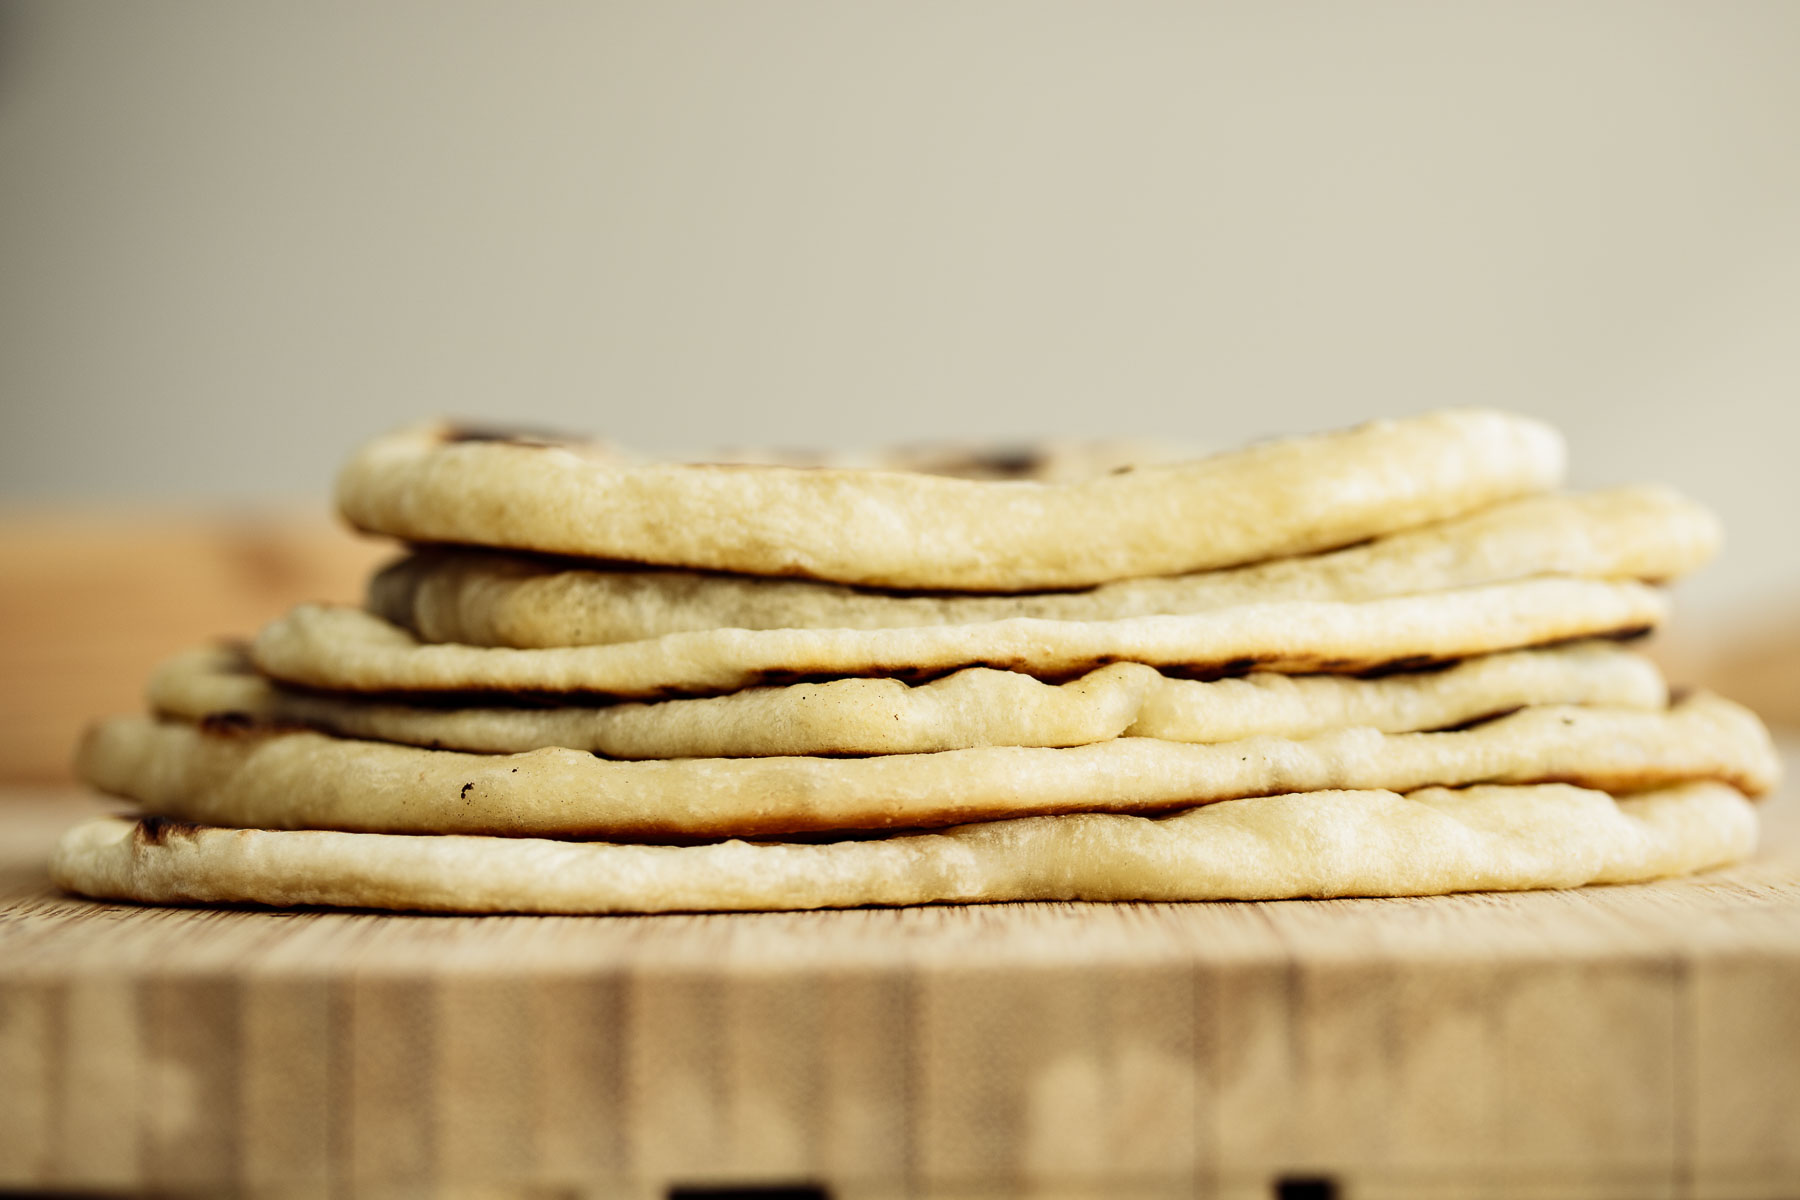 A stack of flatbread.